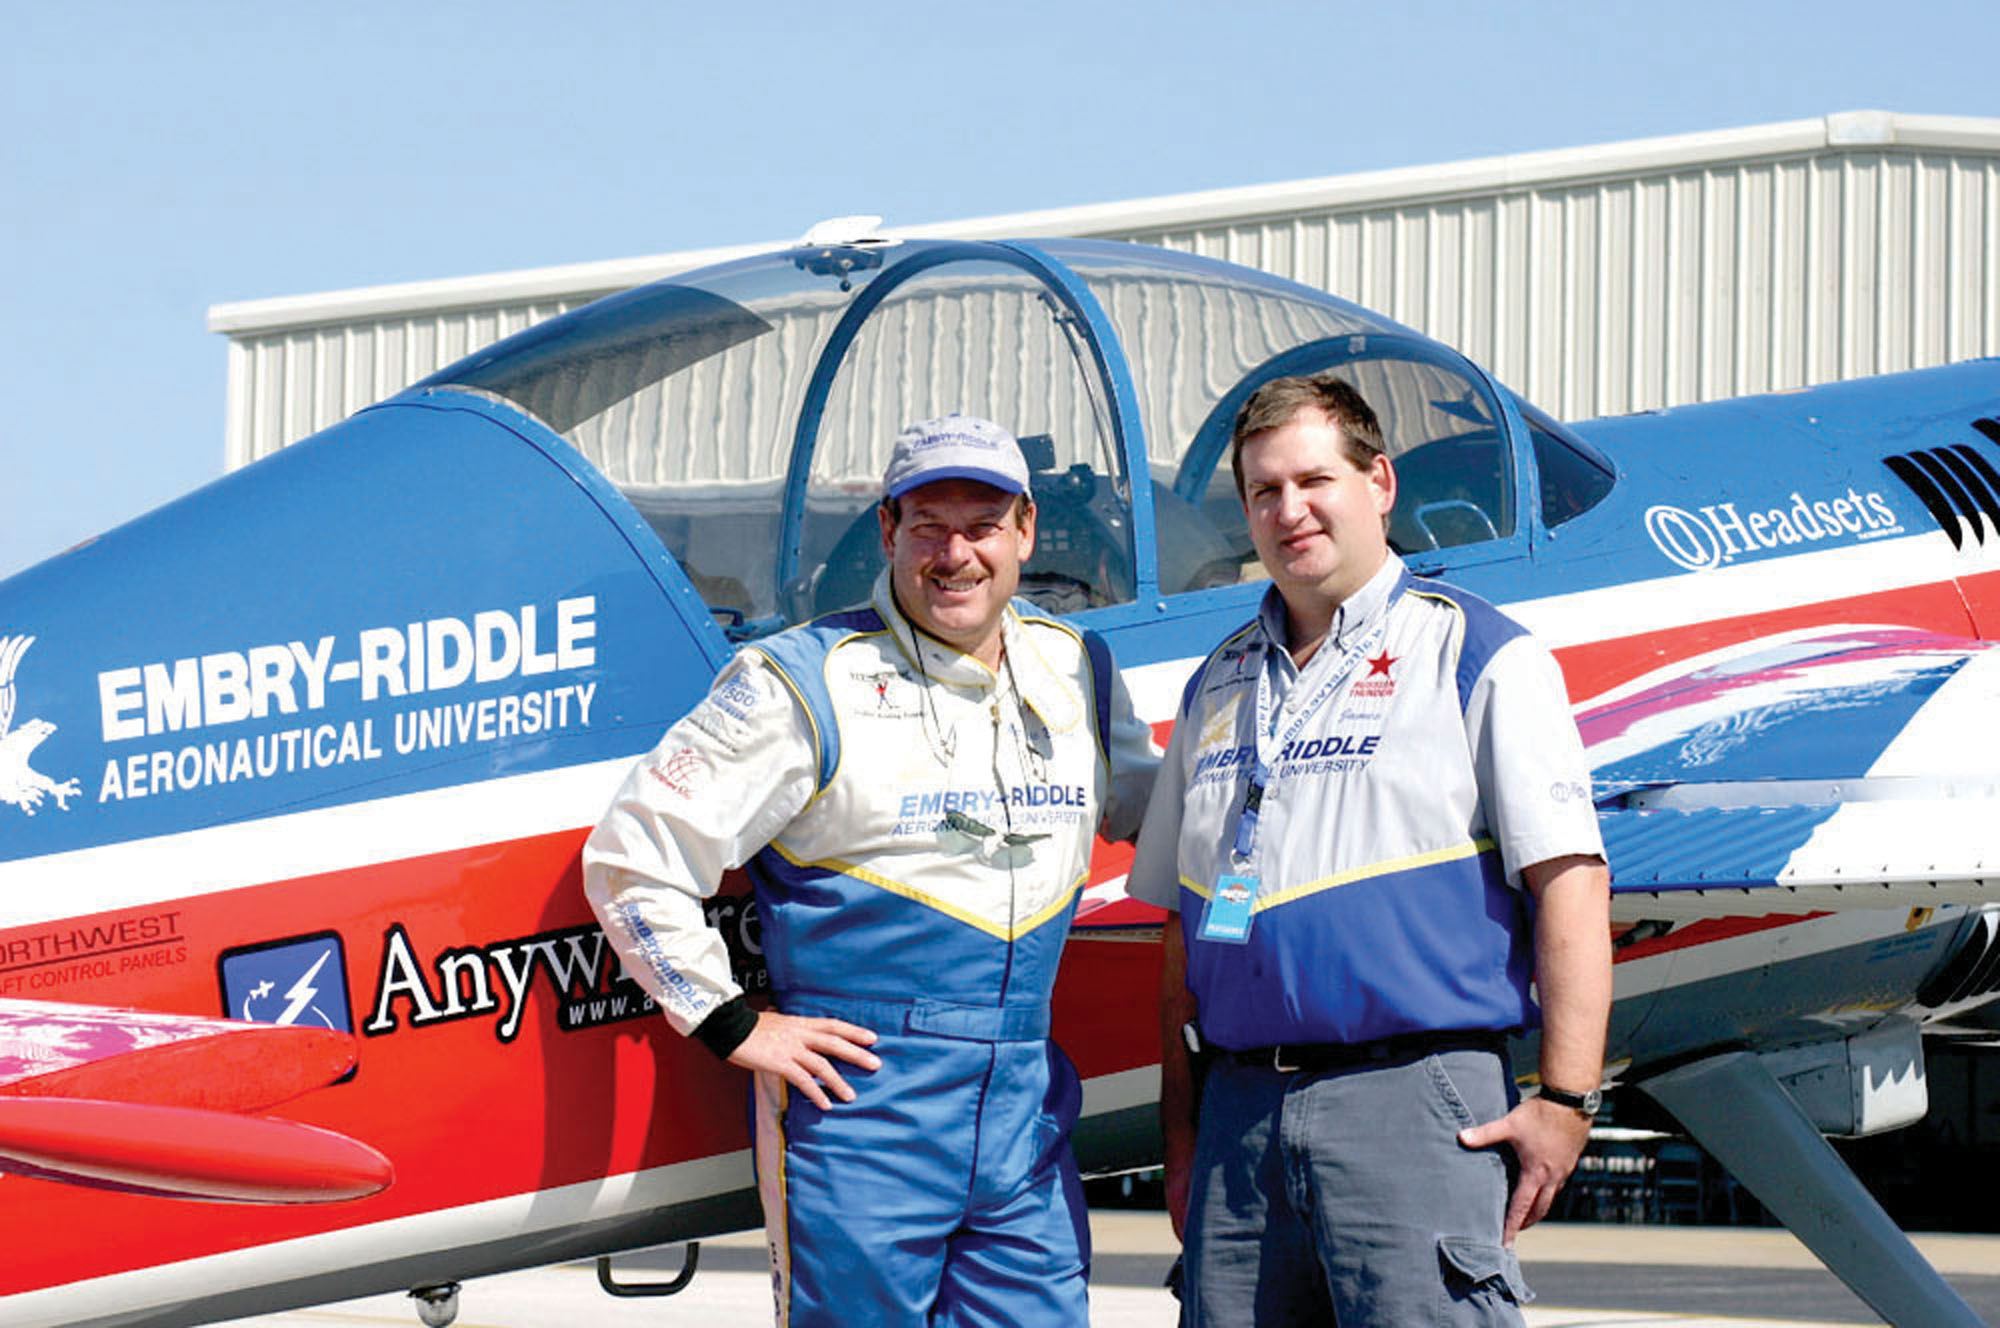 Embry-Riddle Holds its First Air Show